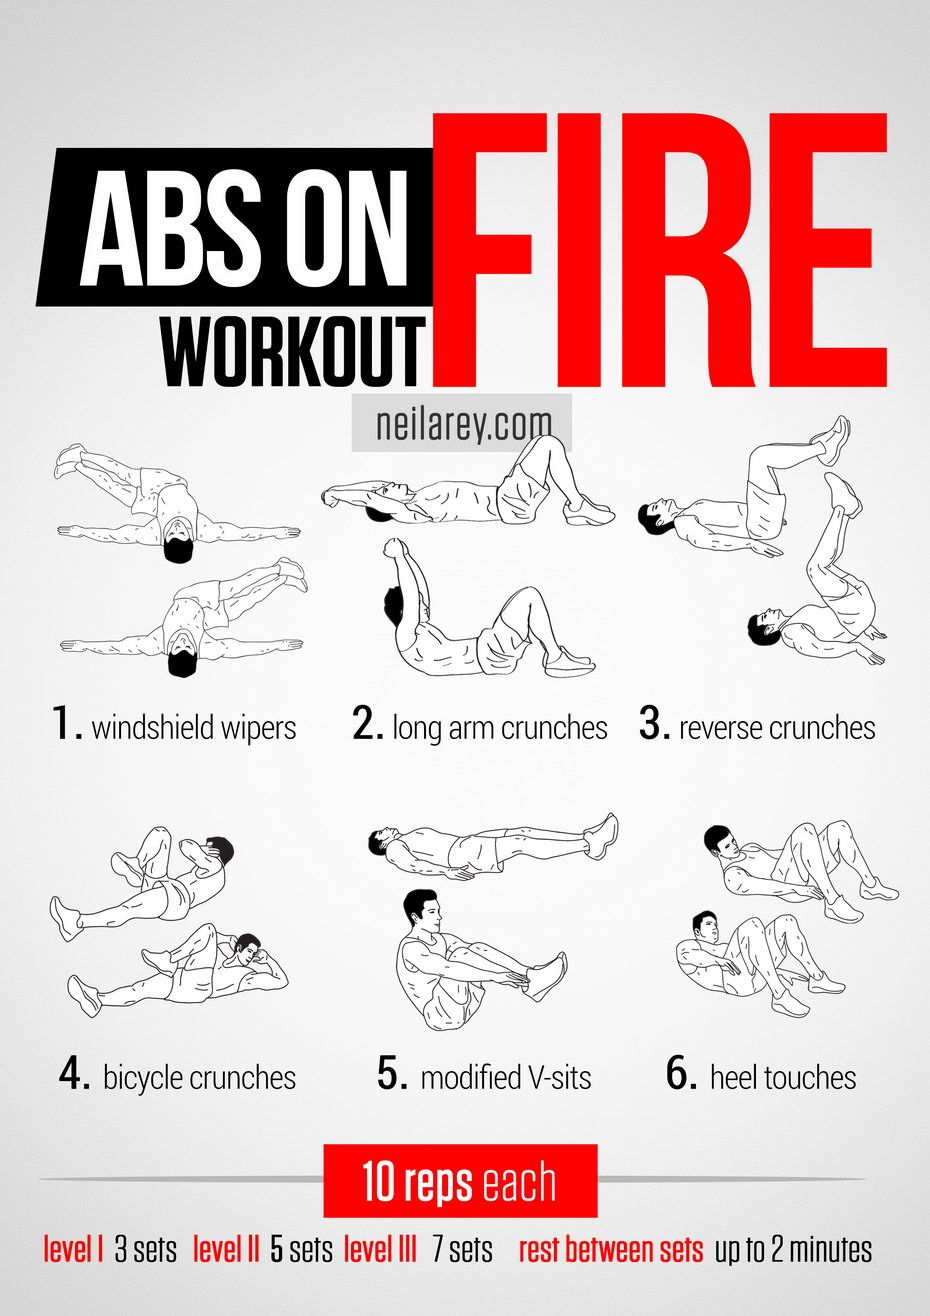 Abs on Fire Workout core lower abs upper abs obliques legs